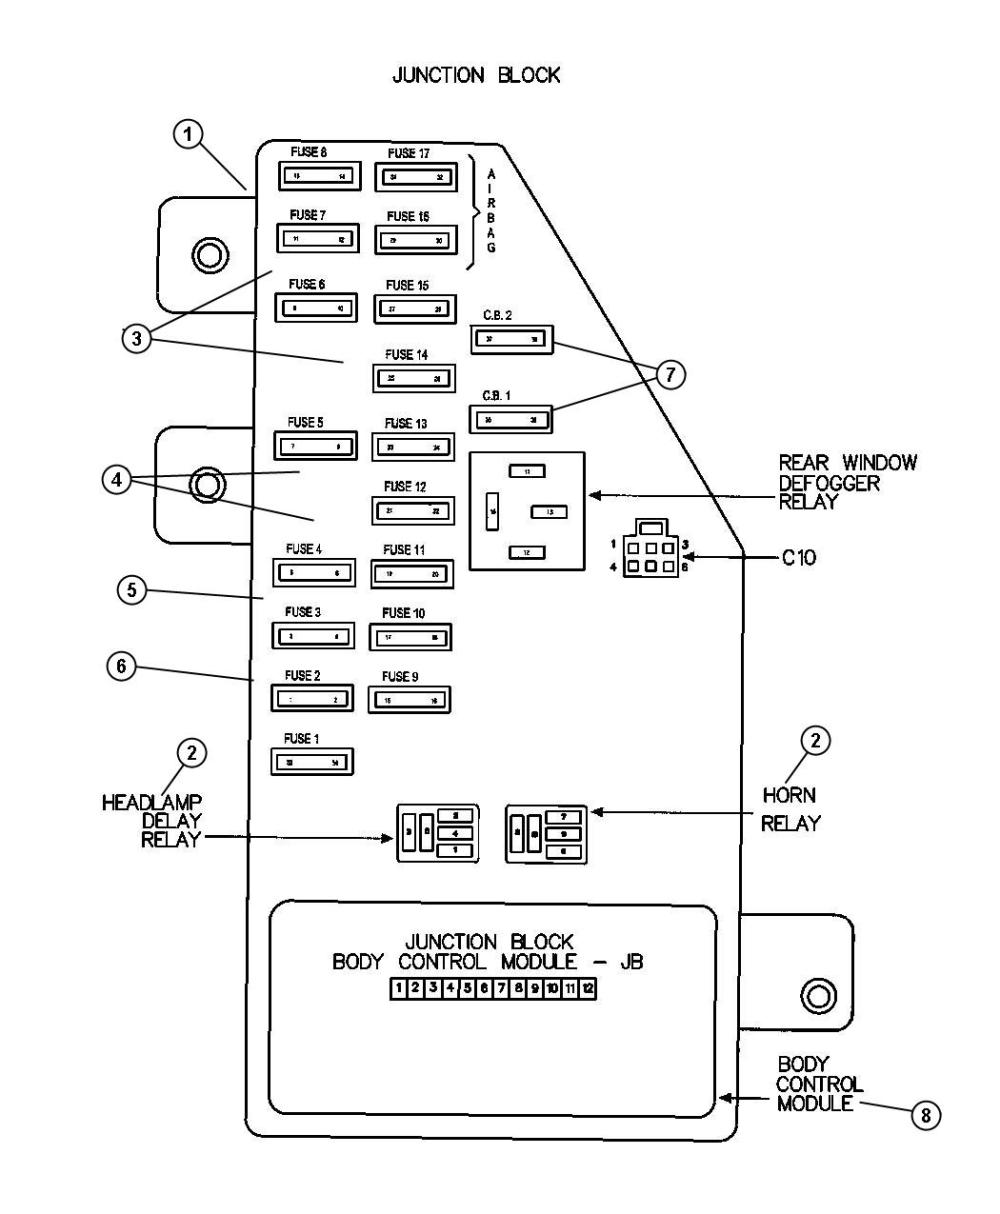 medium resolution of 04 dodge stratus wiring diagram wiring library2004 dodge stratus fuse box diagram